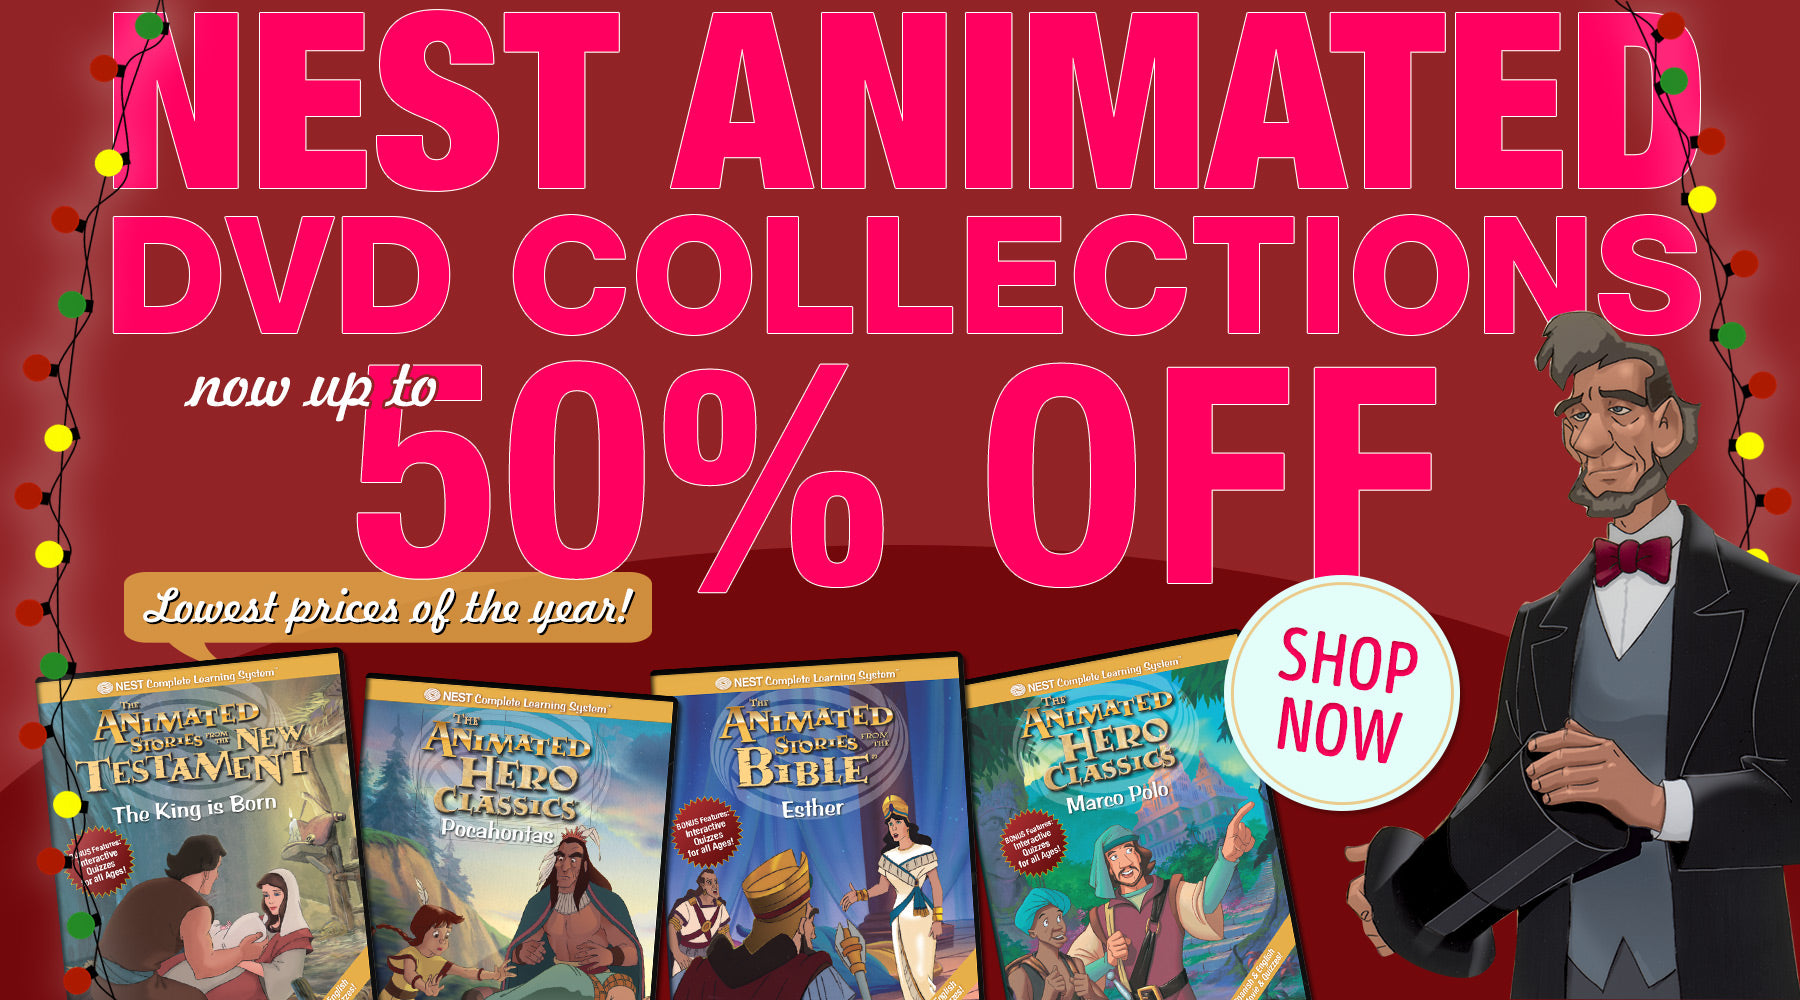 Nest Animated DVD Collections up to 50% off